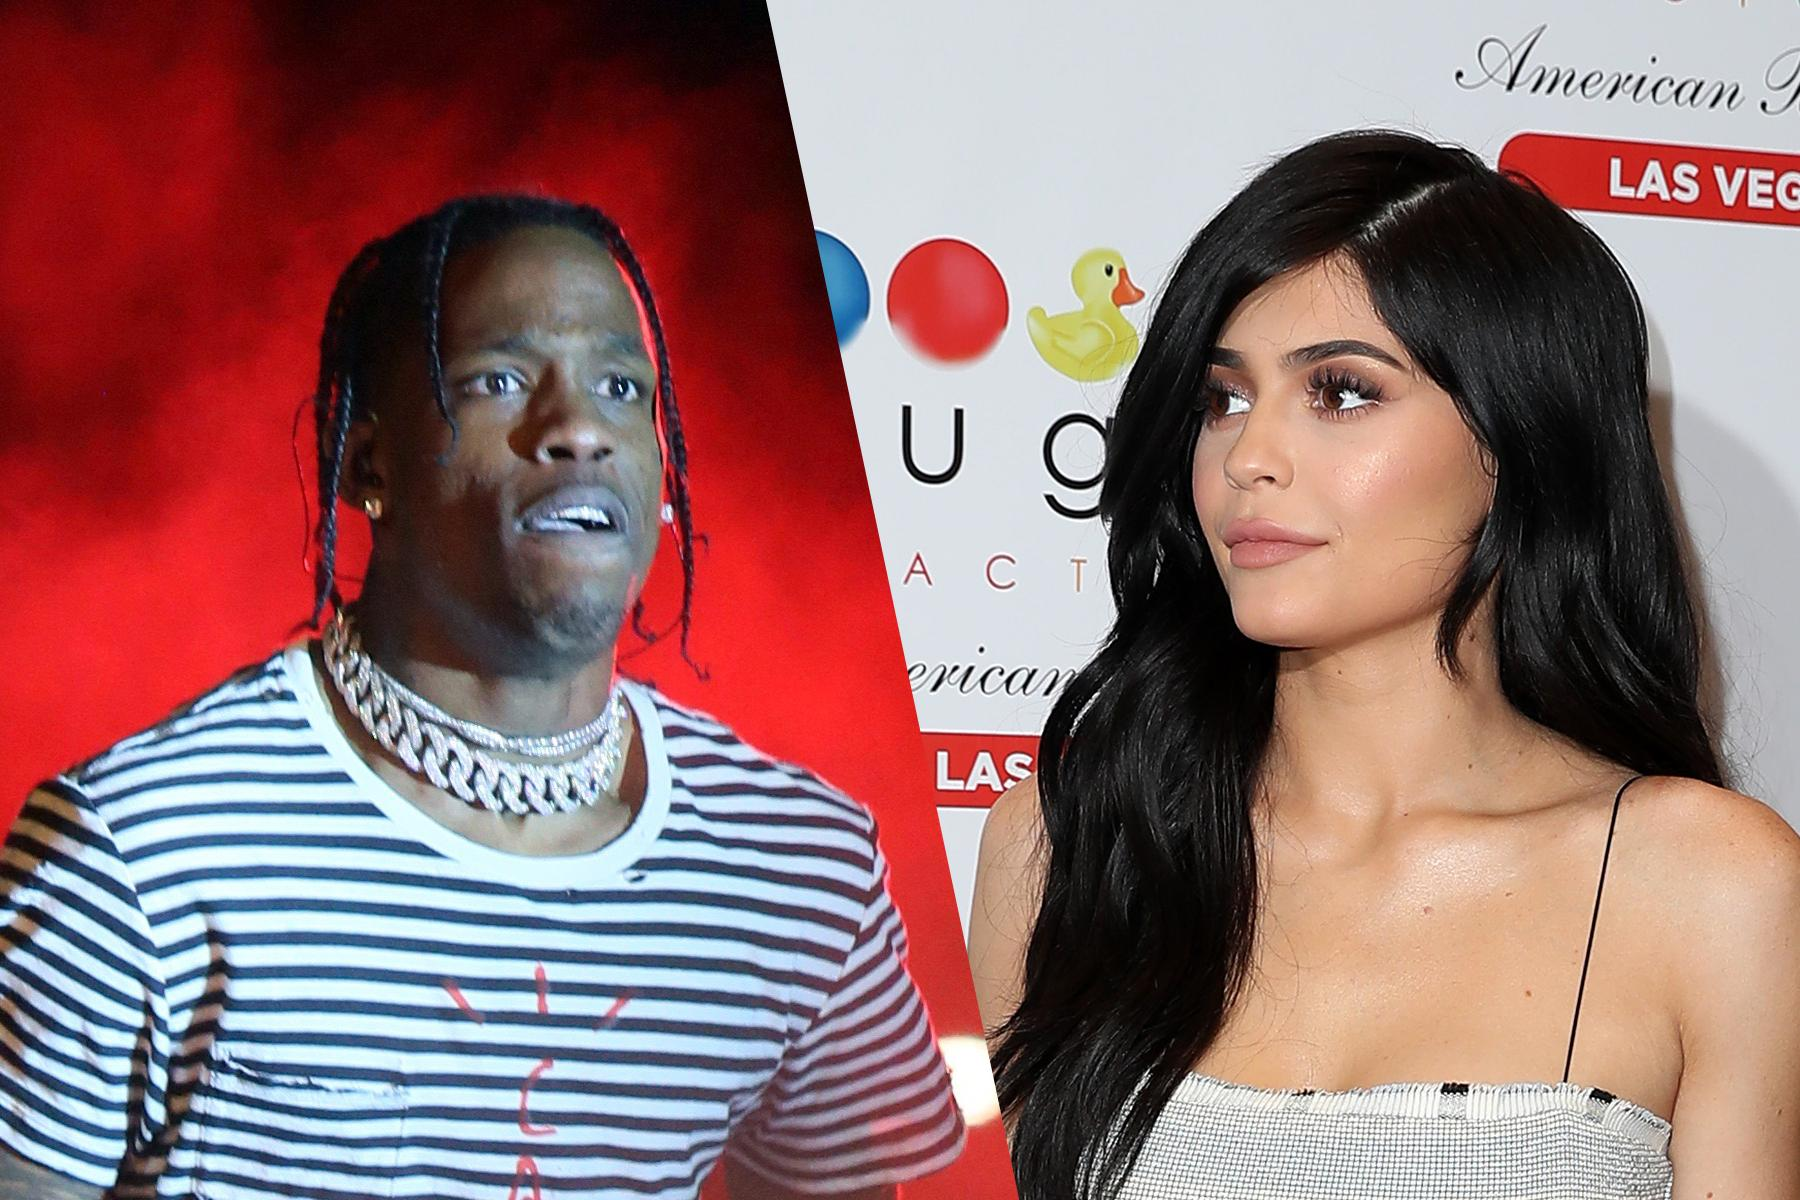 Kylie Jenner 'Accuses' Travis Scott Of Cheating As He Cancels Tour Date